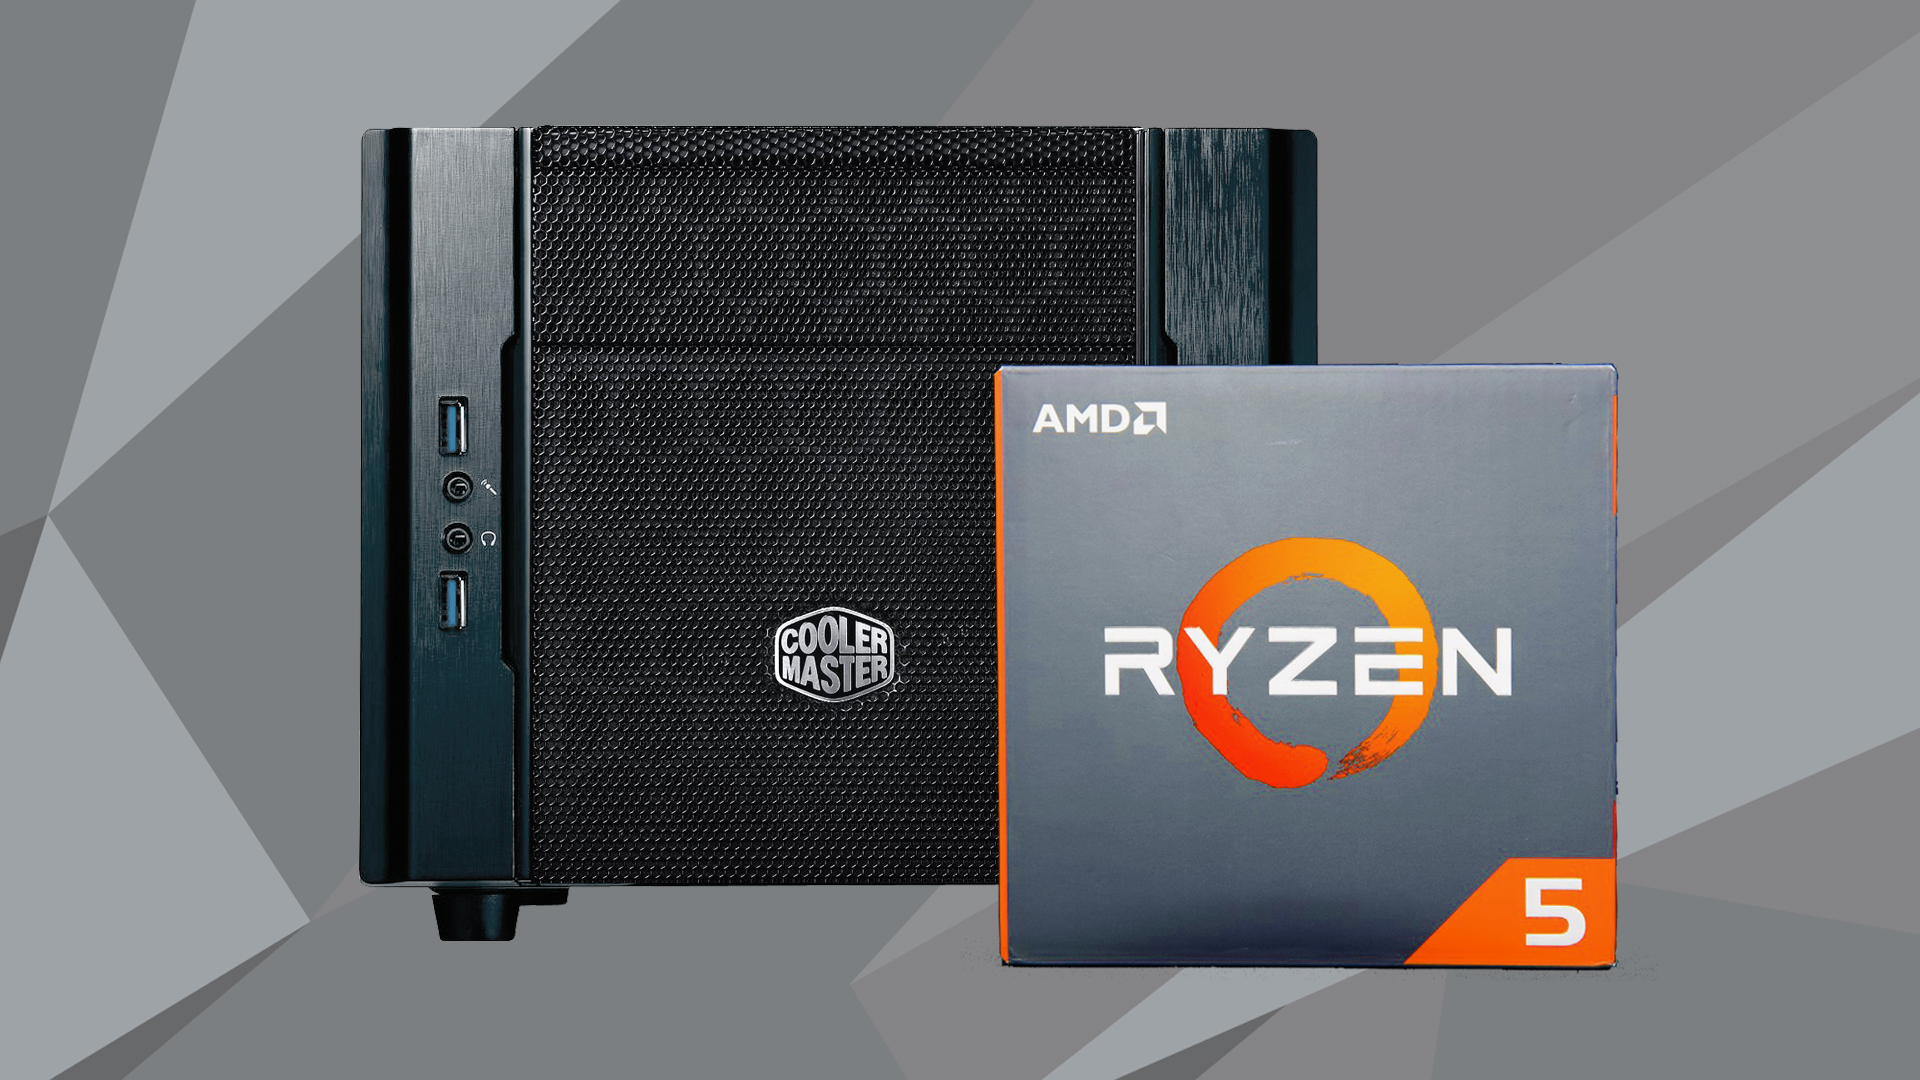 Small-Factor Ryzen: A Mini-ITX PC For Work and Play